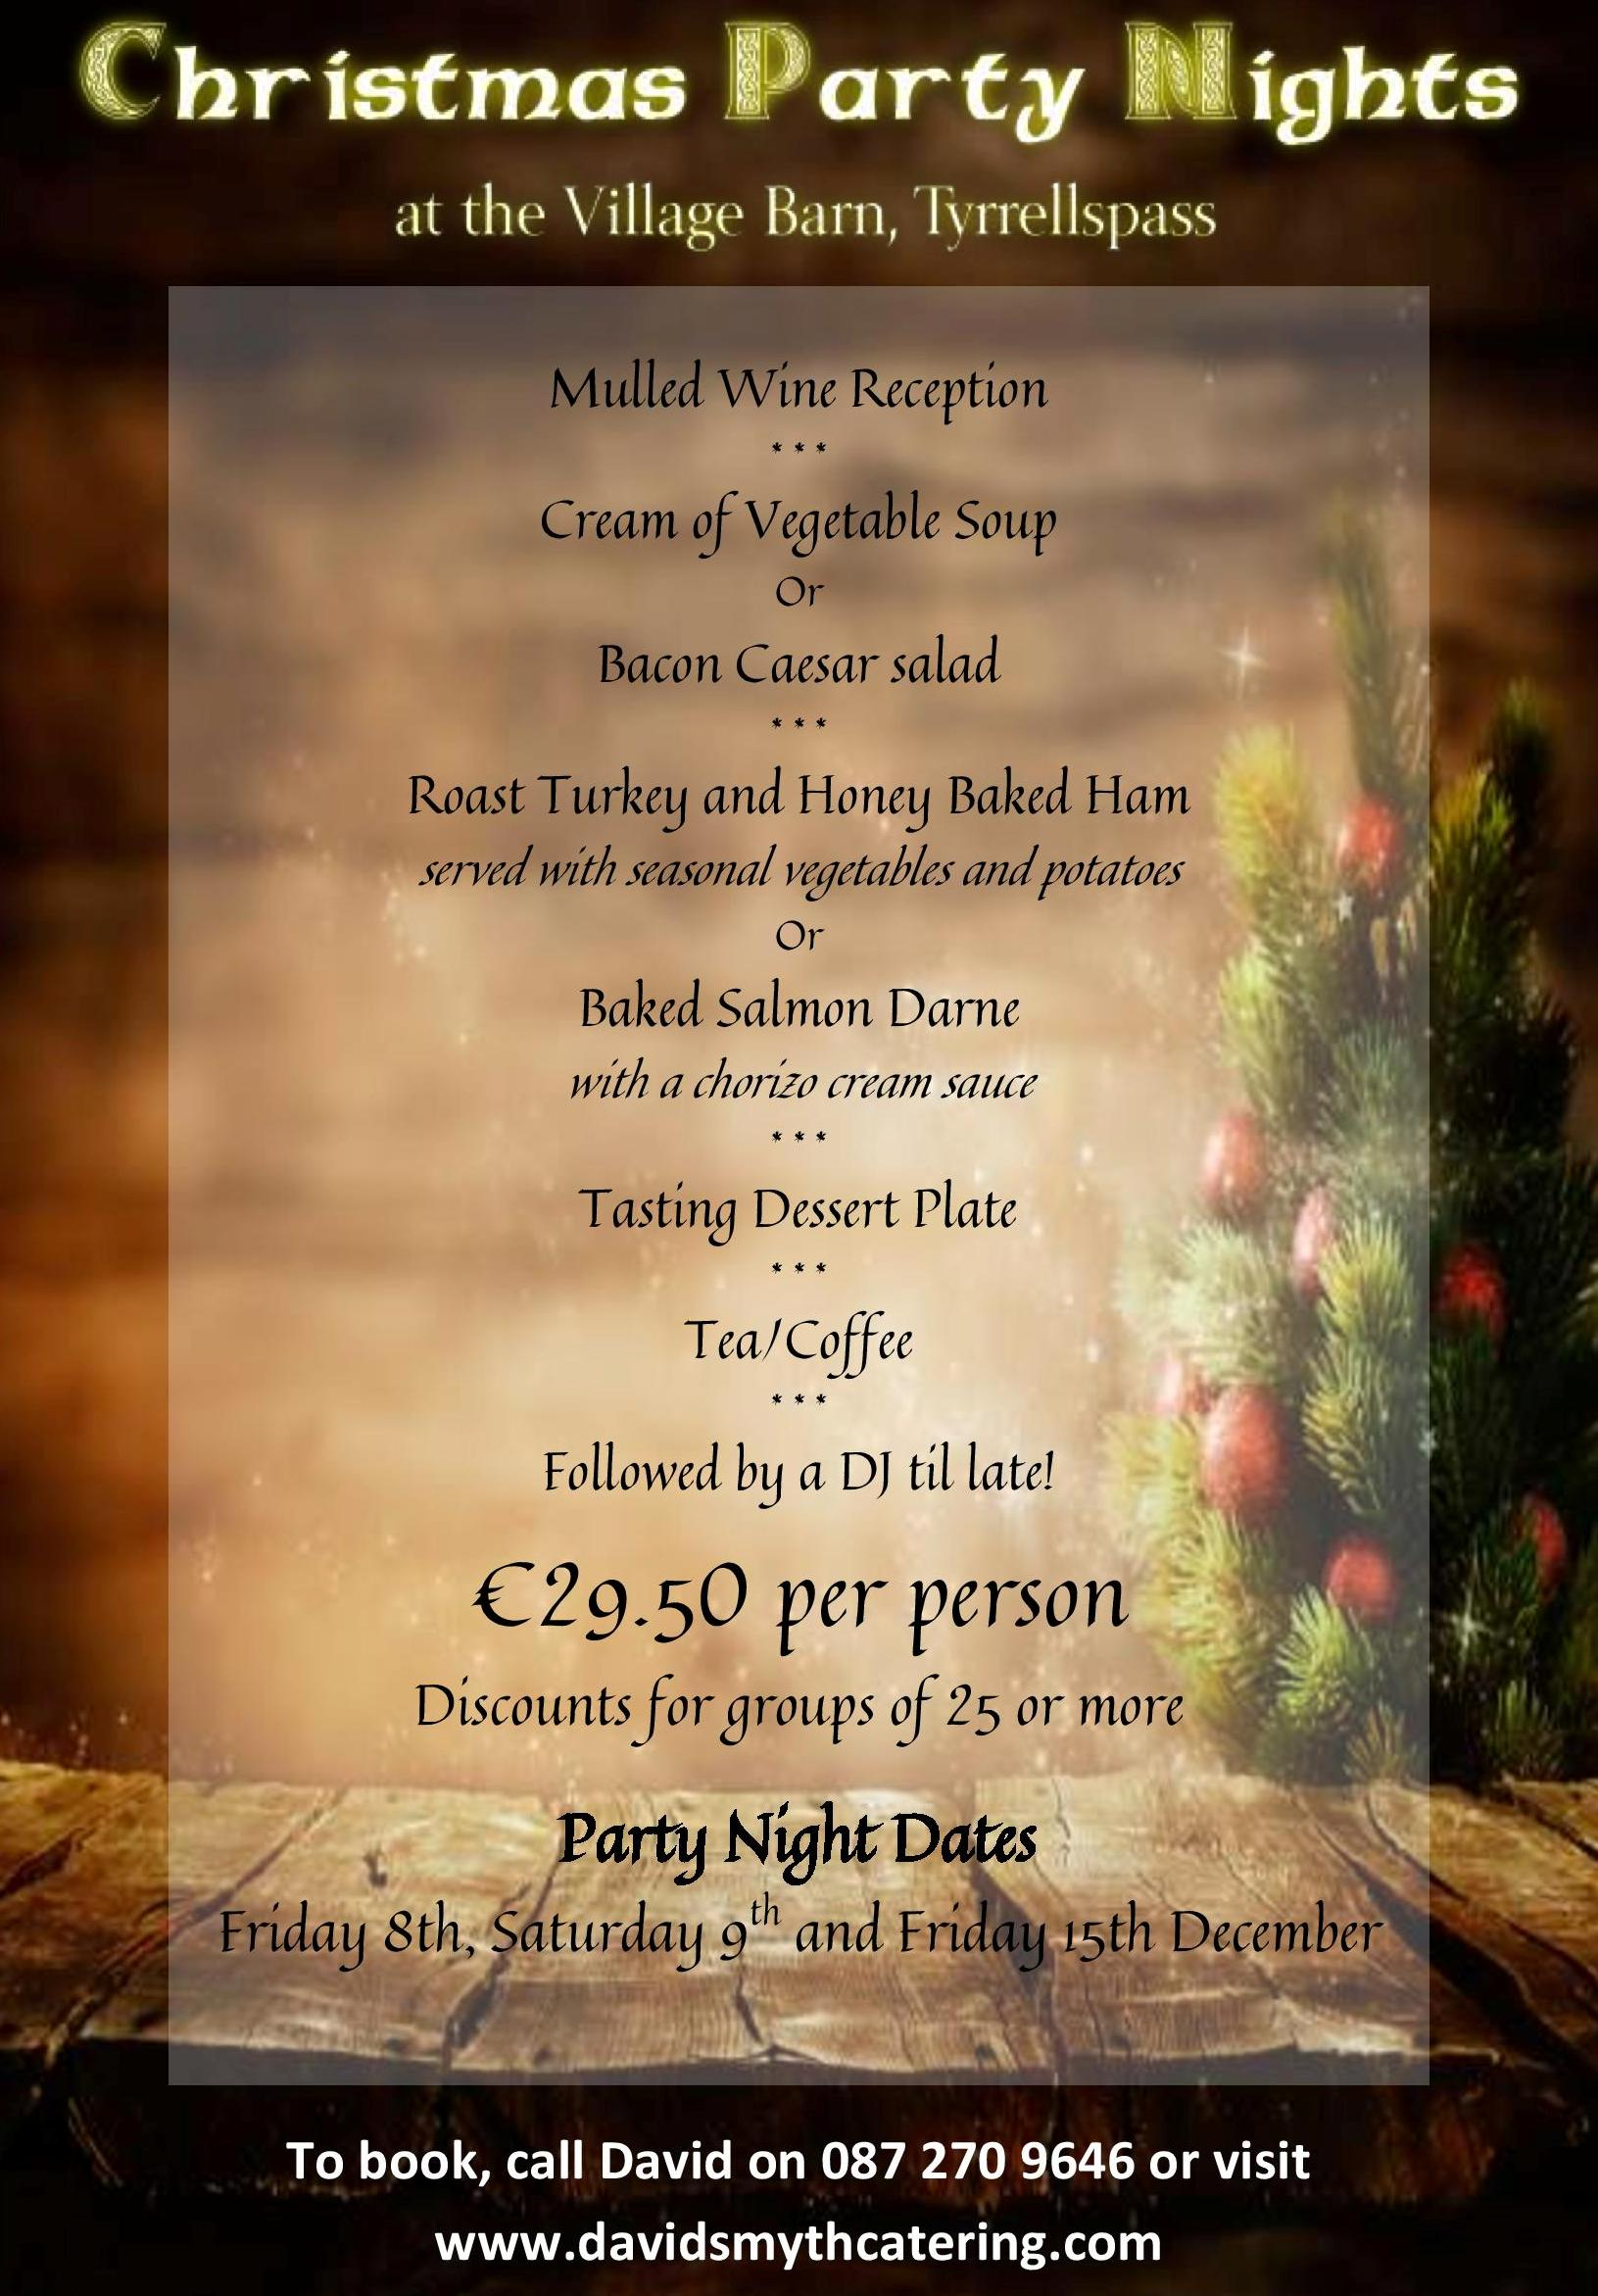 Christmas Party Nights at The Village Barn, Tyrrellspass